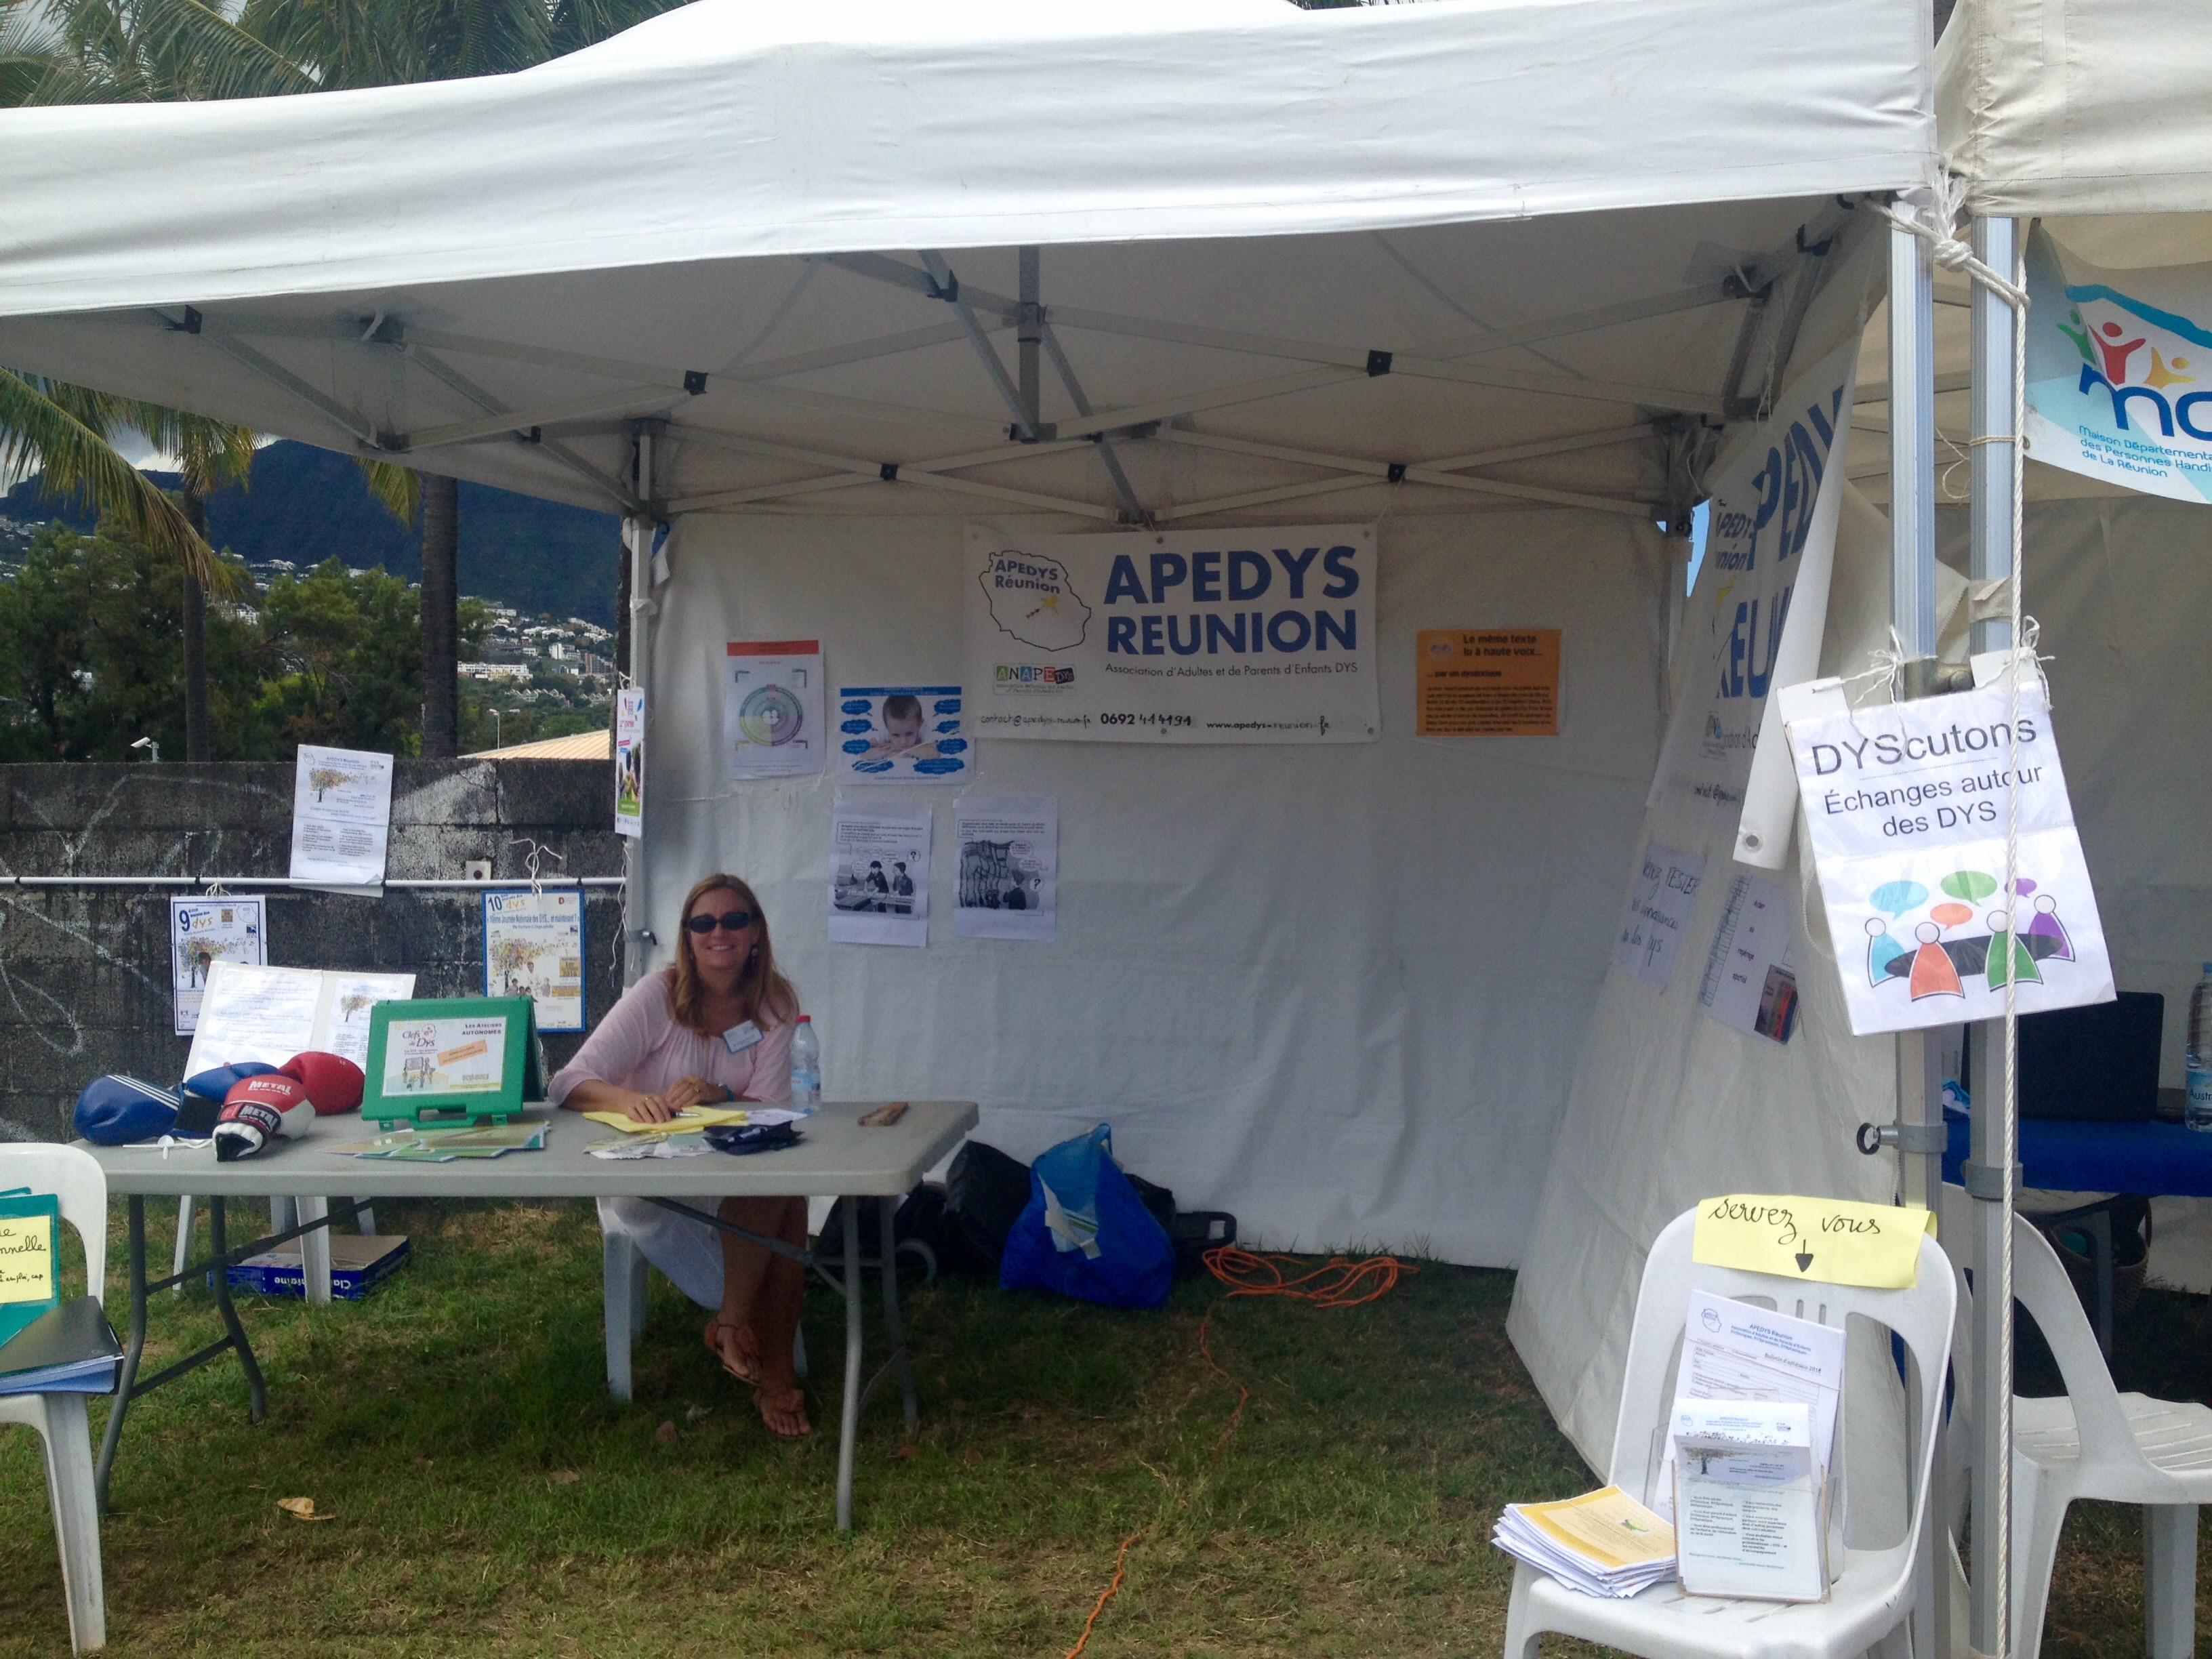 Photo Journee Du Handicap 2017 - 1 - Stand Apedys.jpg